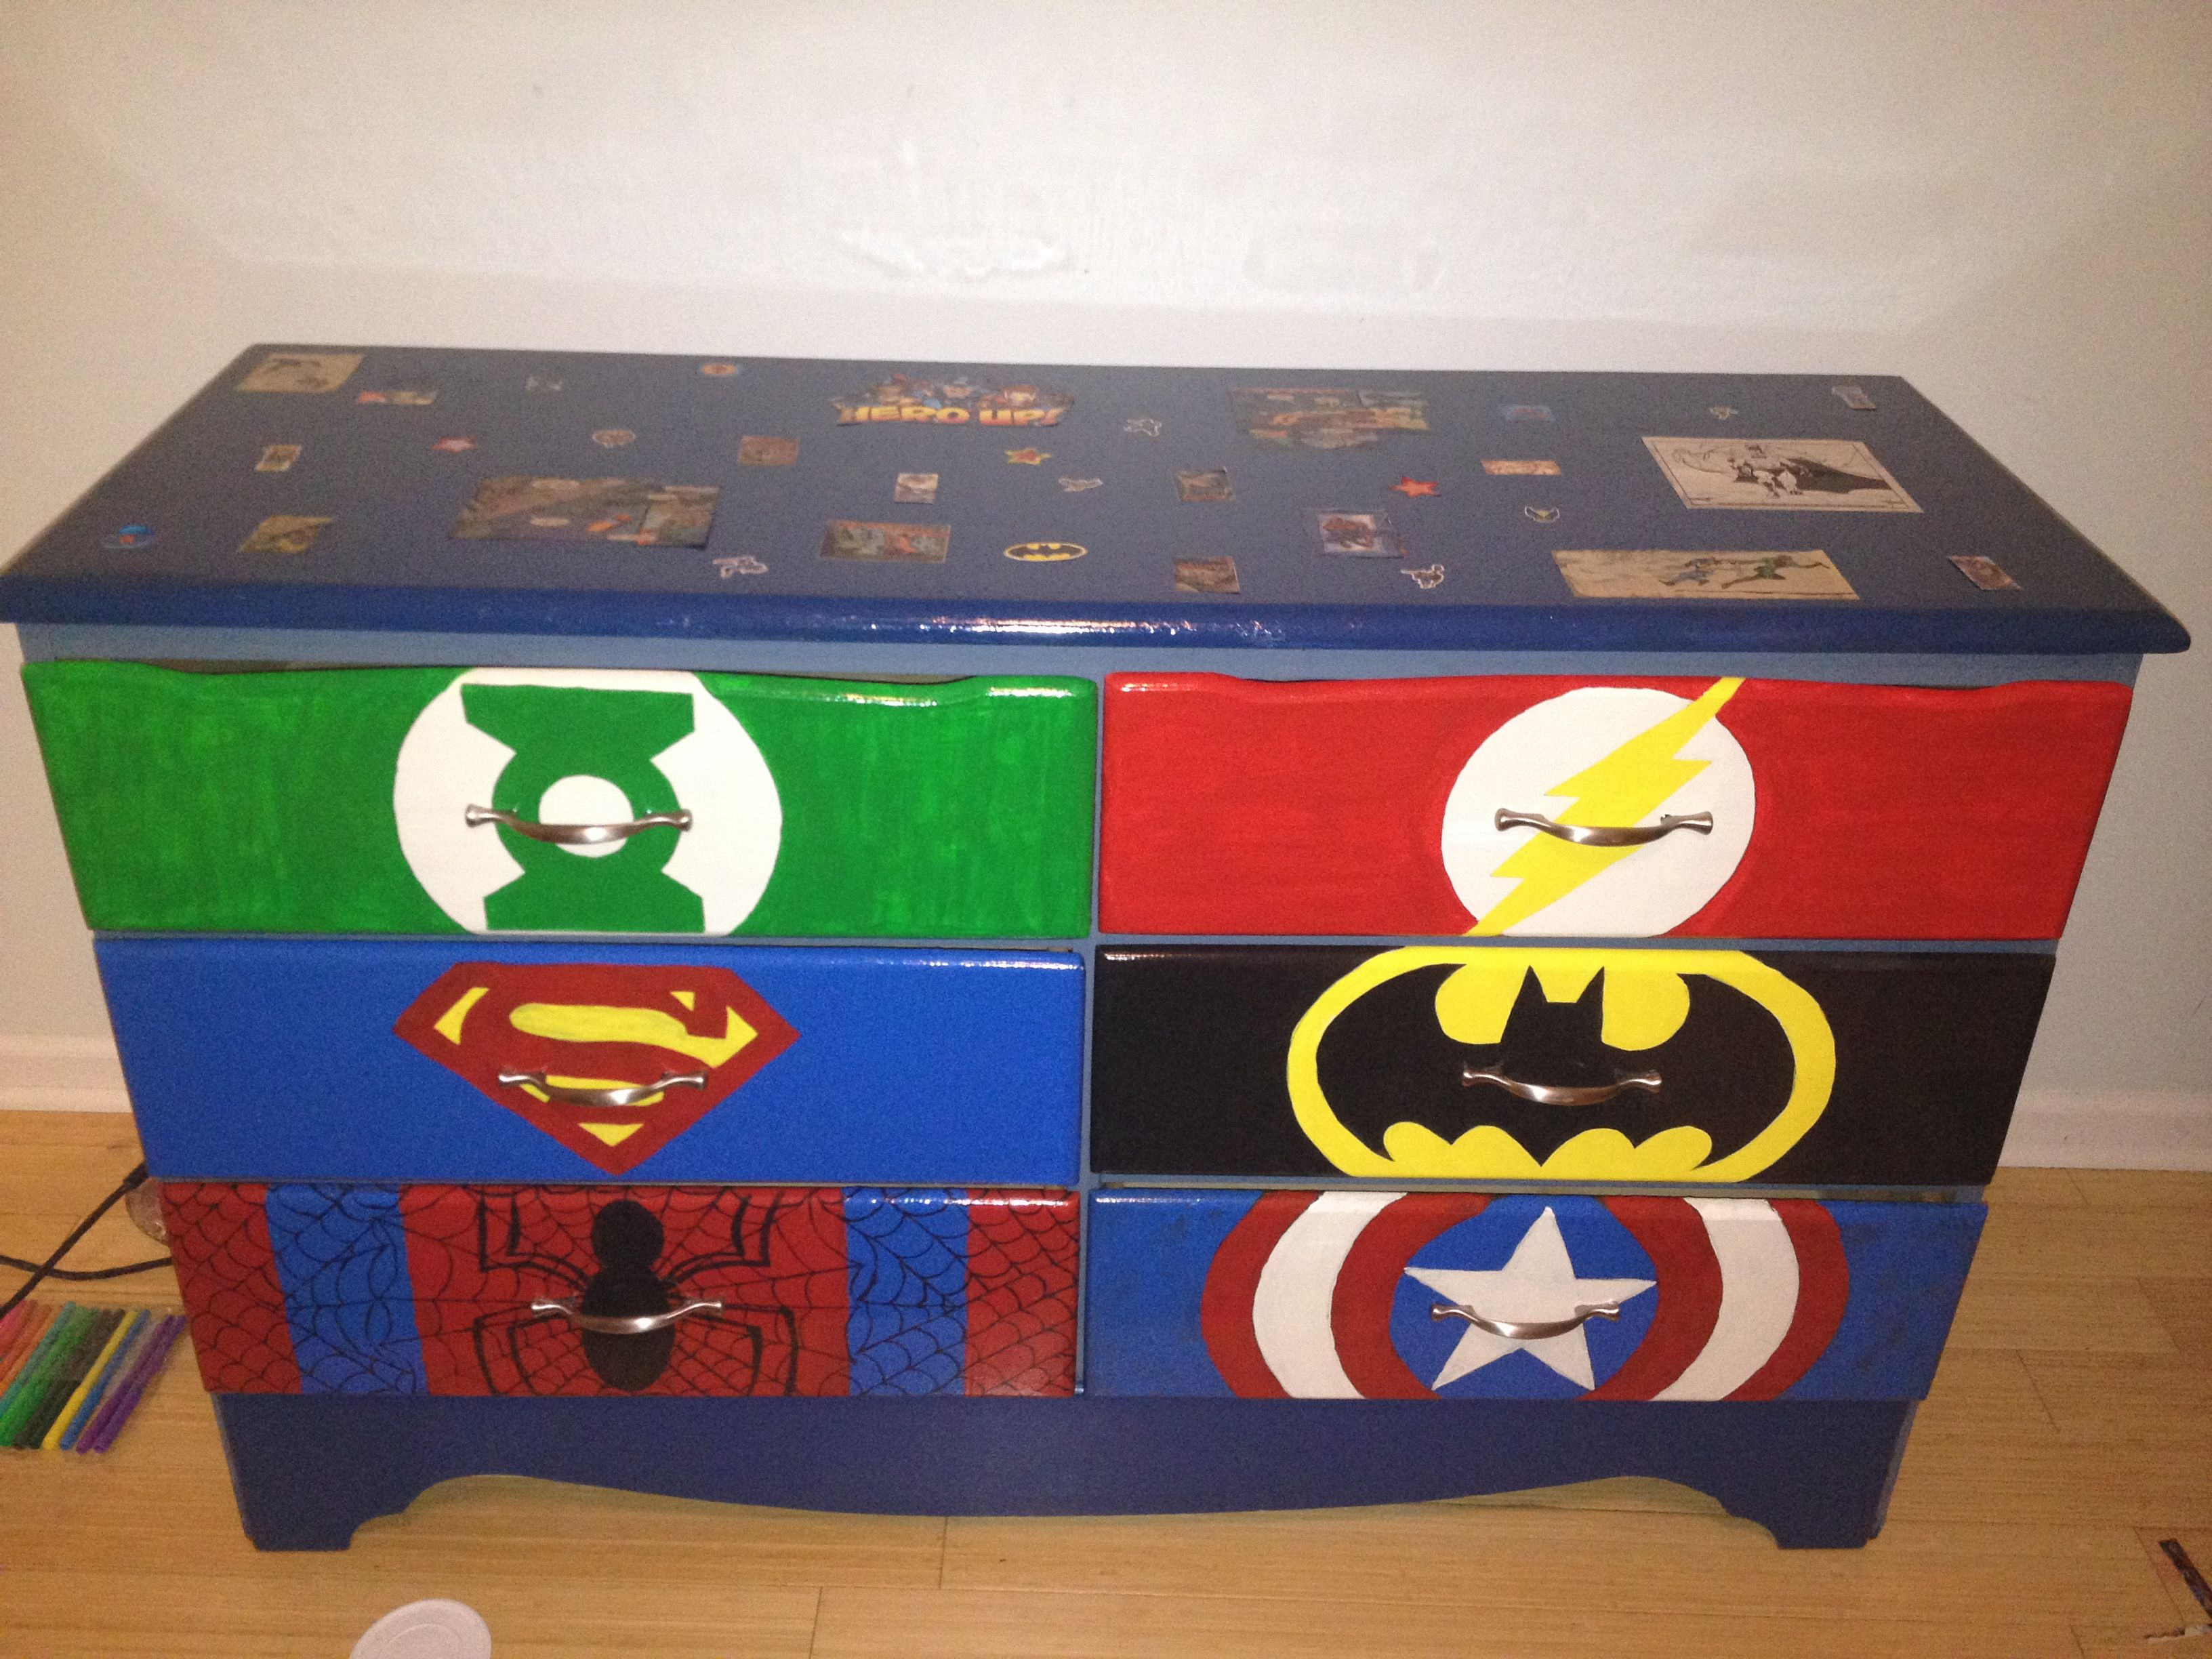 Superhero bedroom - We